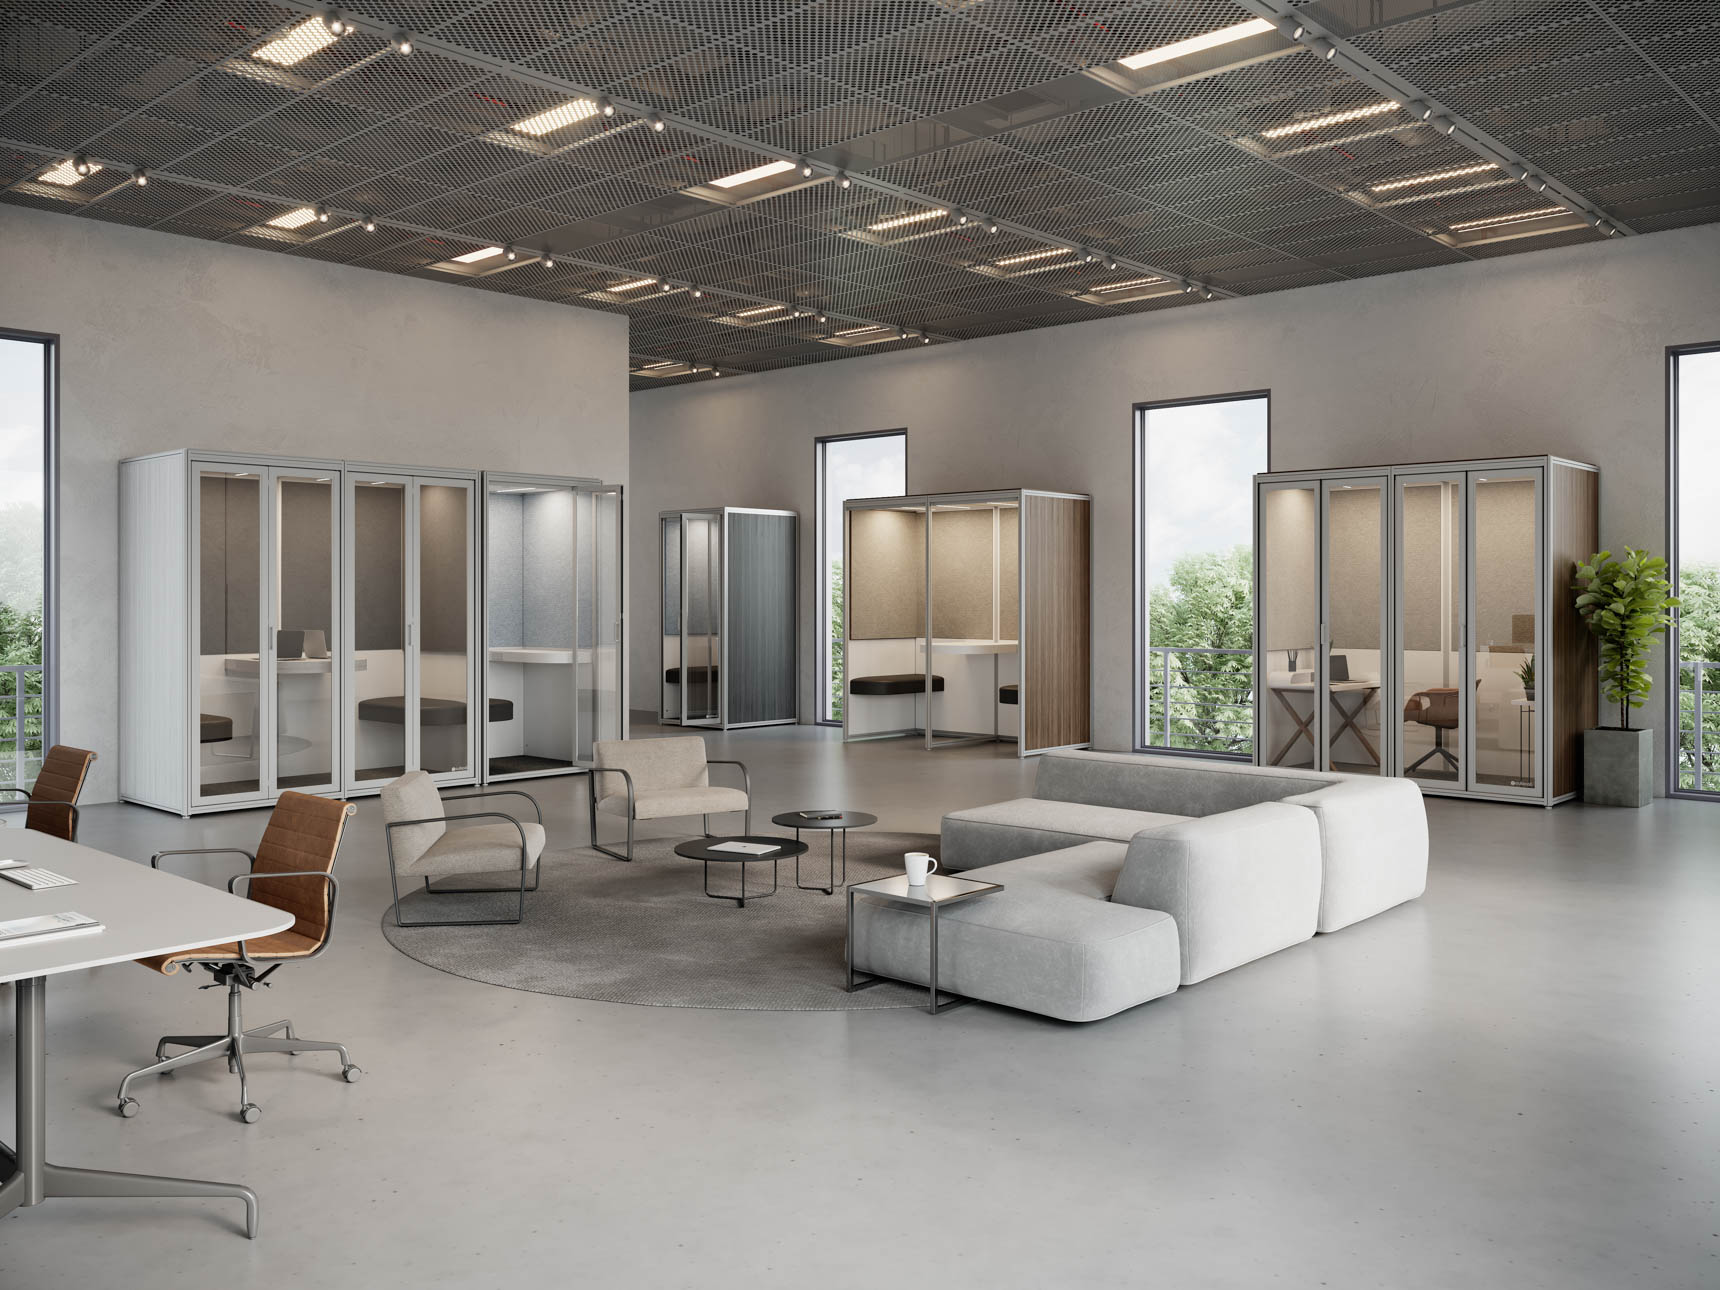 Cubicall Office Privacy & Healthcare Isolation Solutions